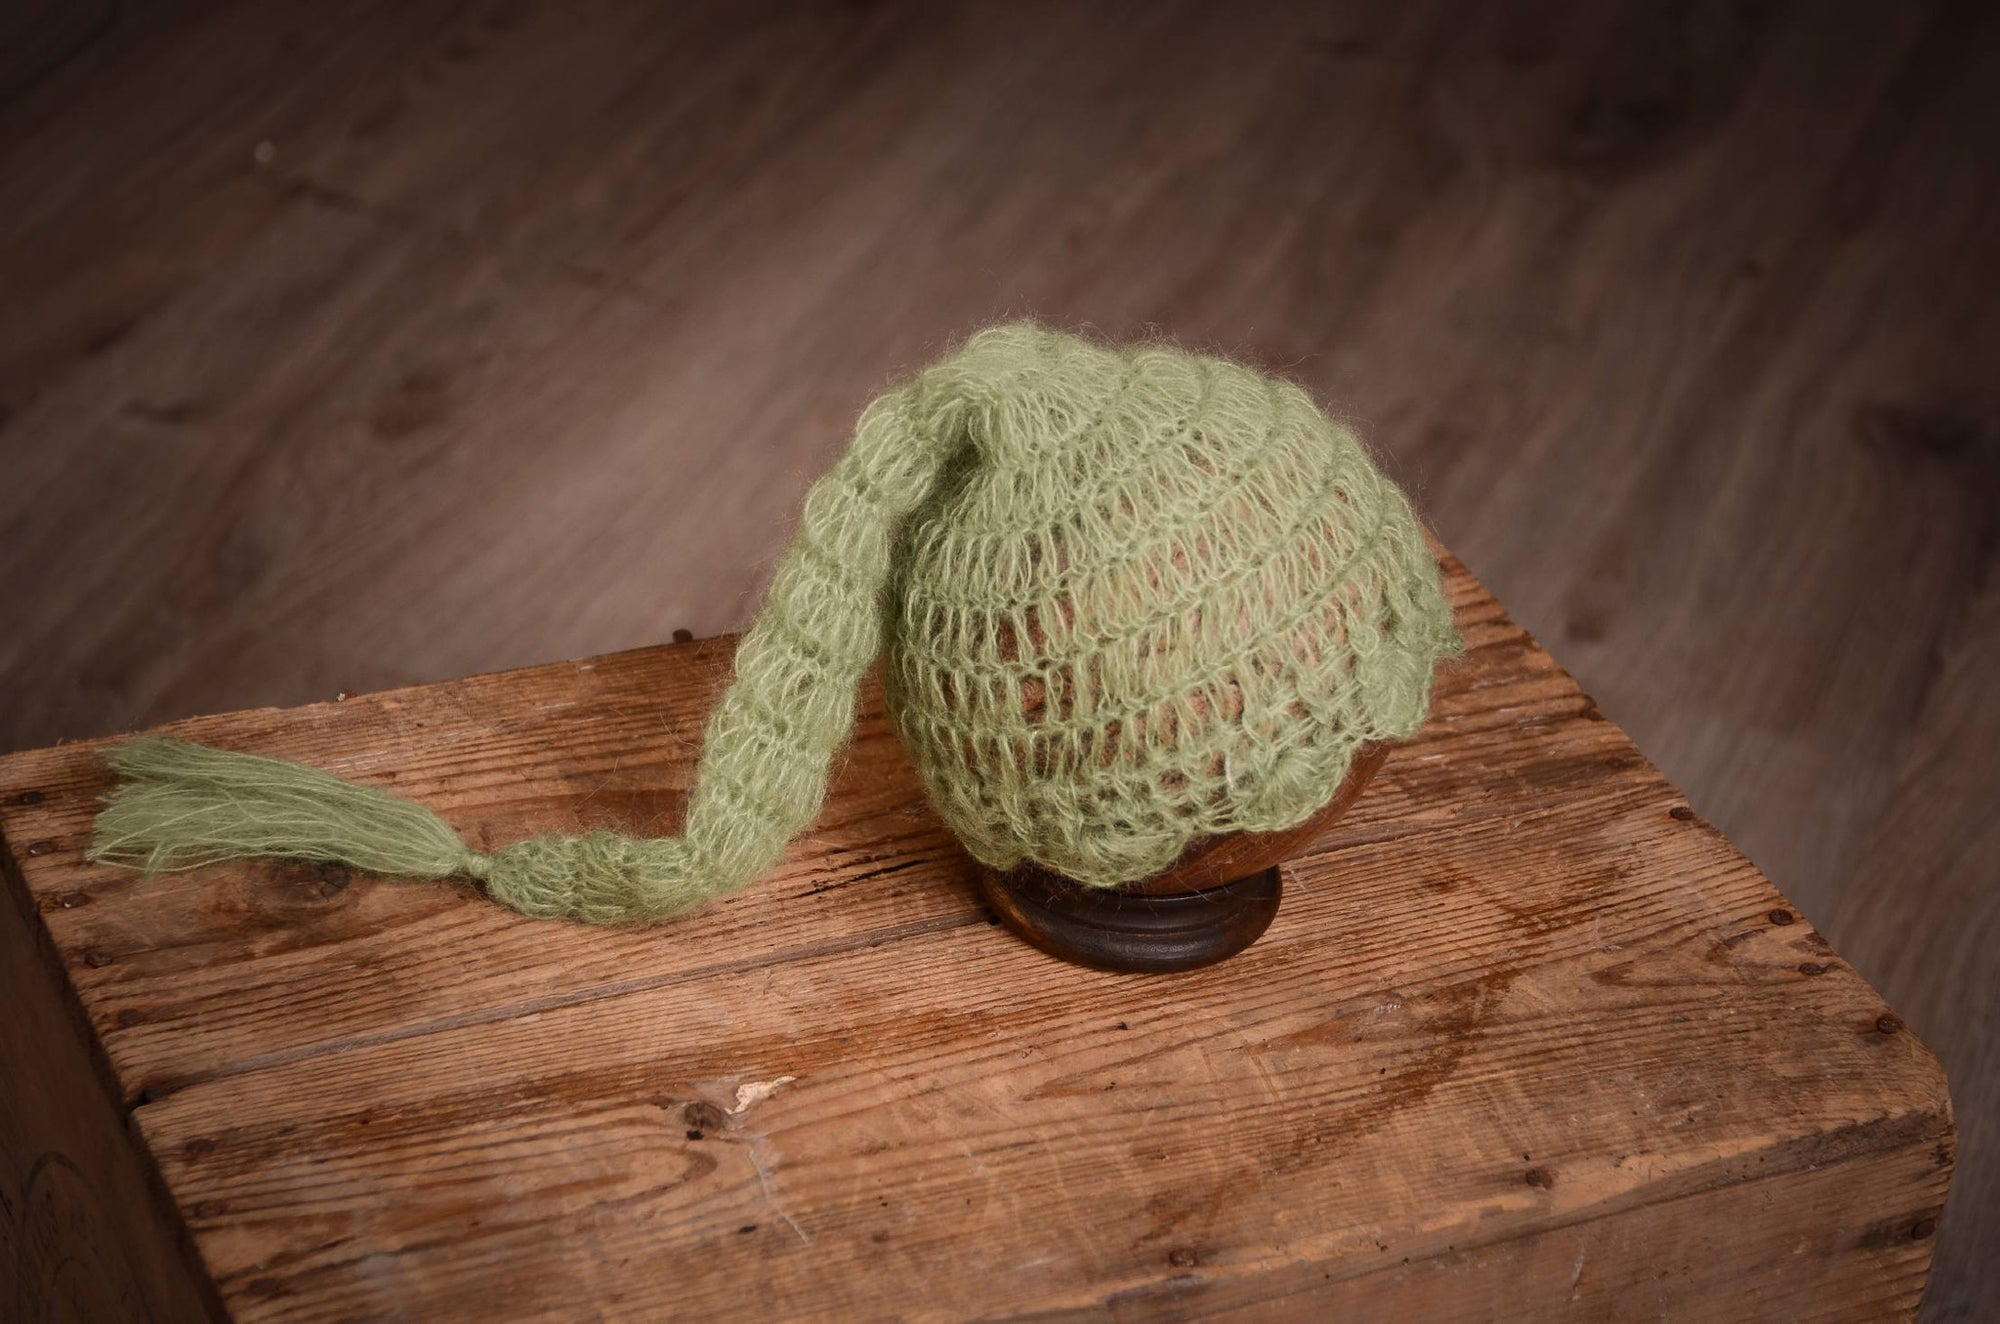 Ornate Mohair Sleeping Hat - Sage-Newborn Photography Props